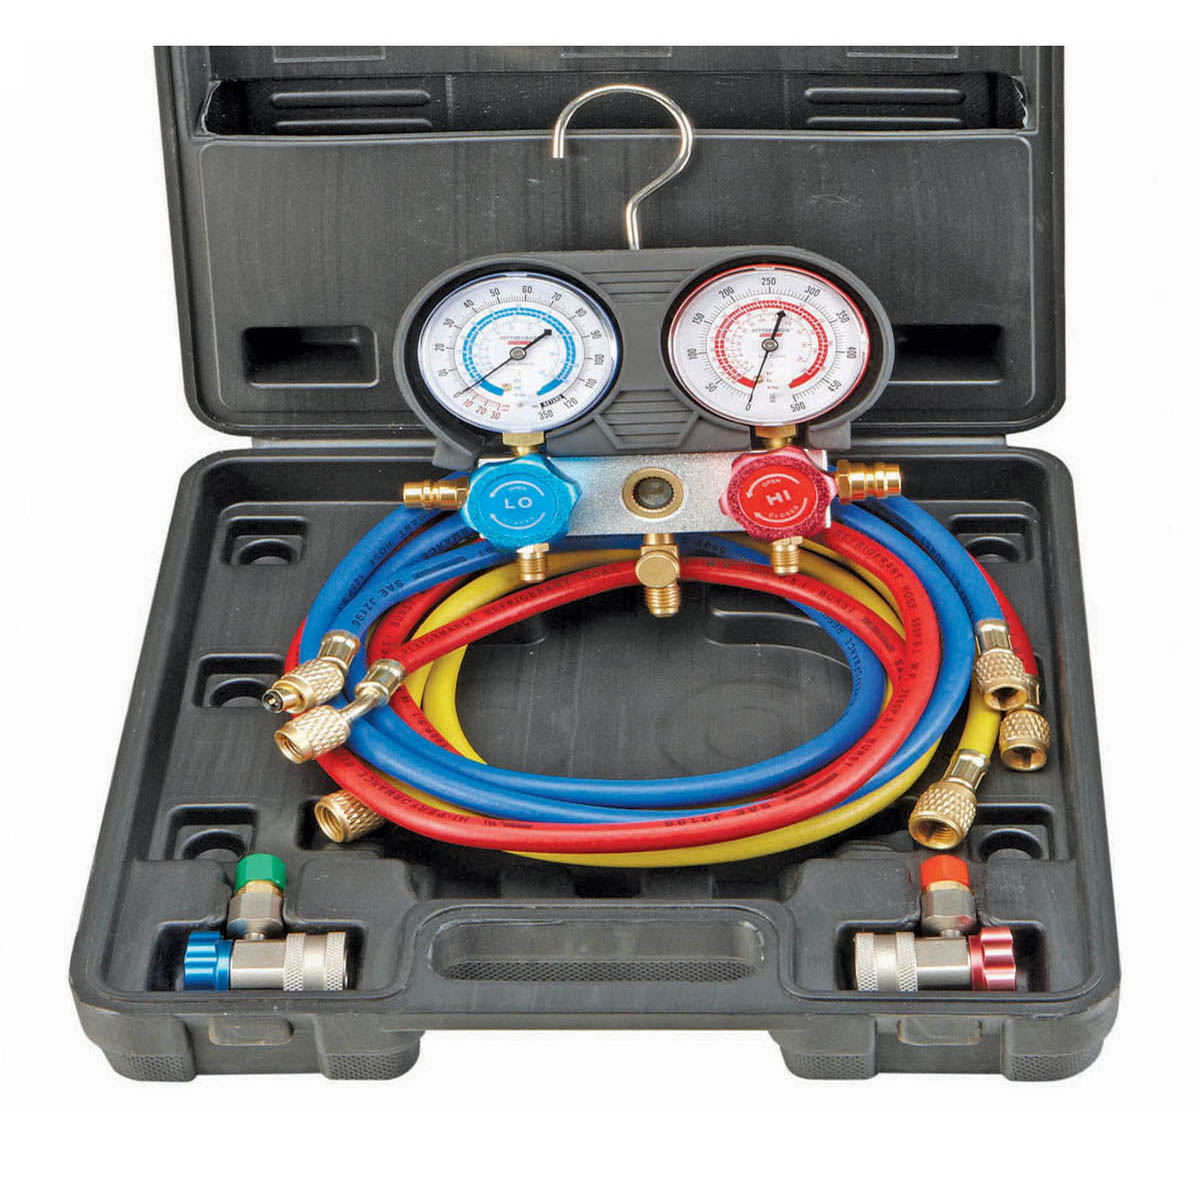 A C R134a Manifold Gauge Set Snap On Welder Plug Wiring Diagram